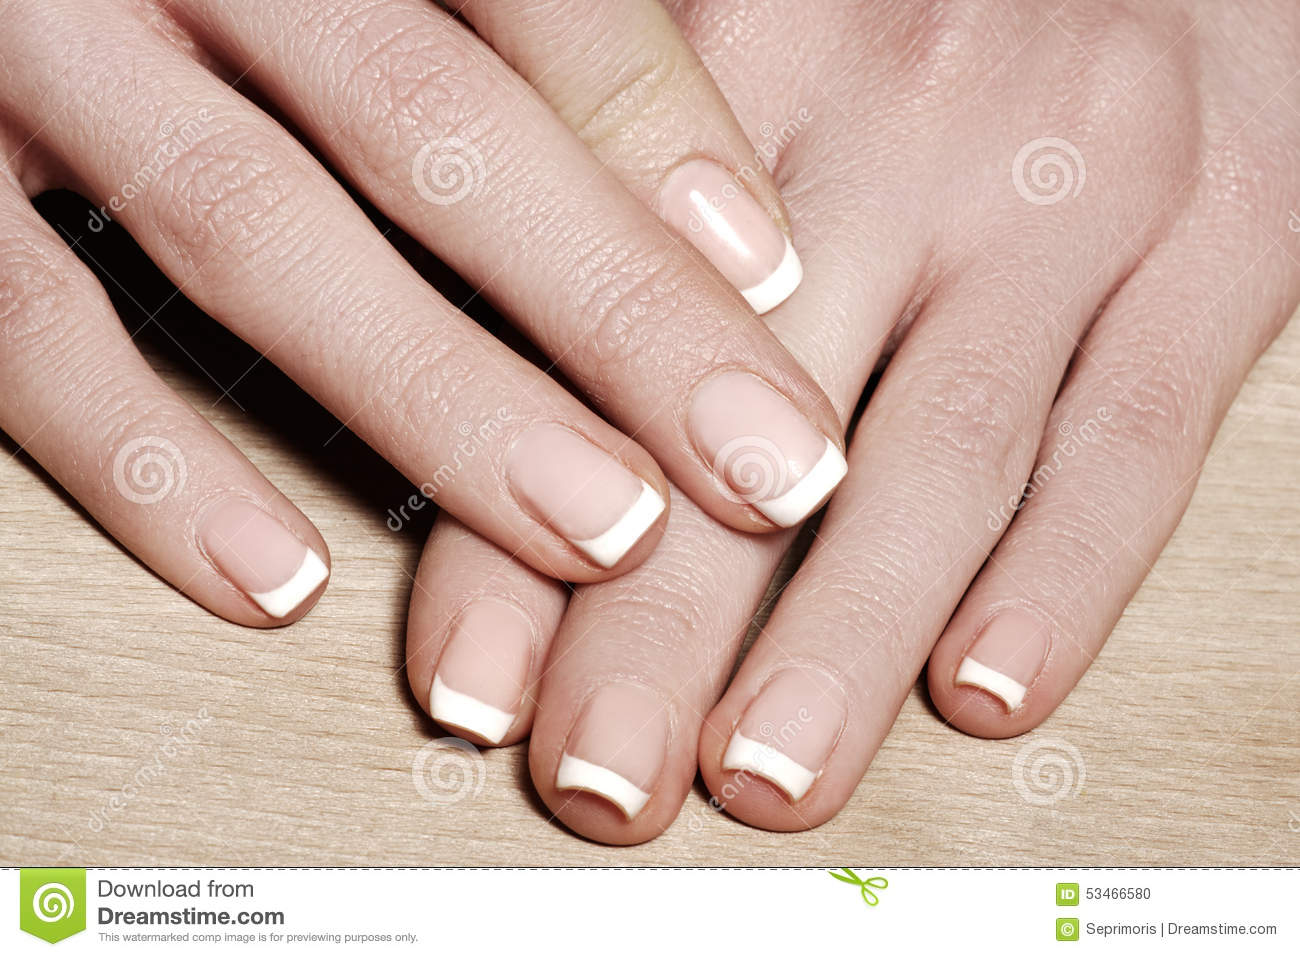 Nails With Perfect French Manicure Care For Female Hands